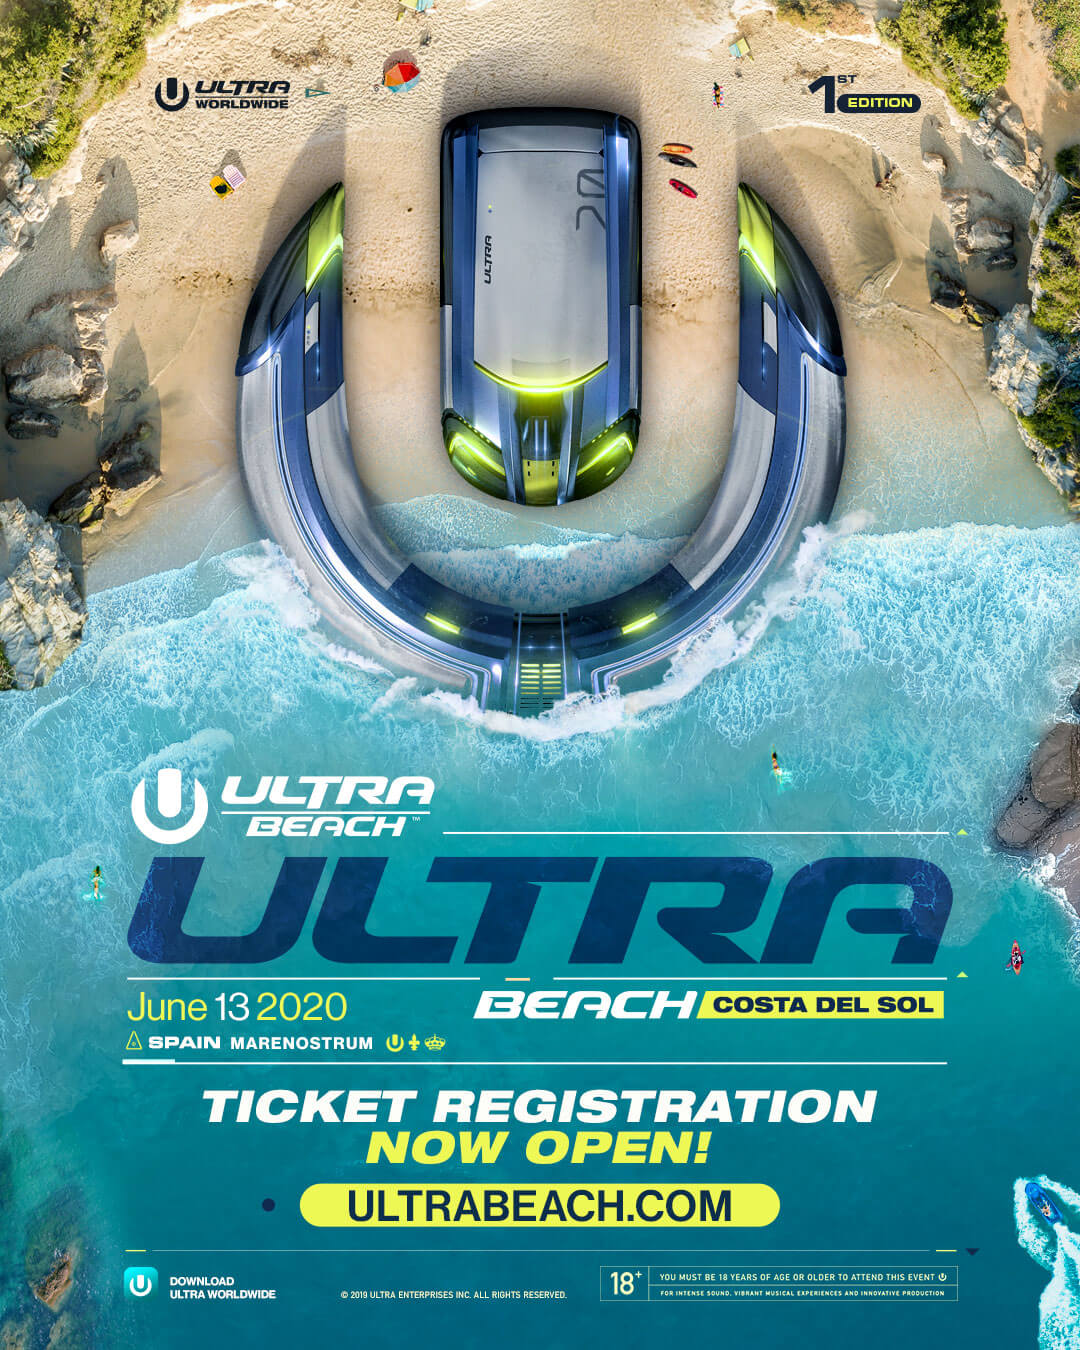 ULTRA BEACH Costa del Sol to Debut June 2020